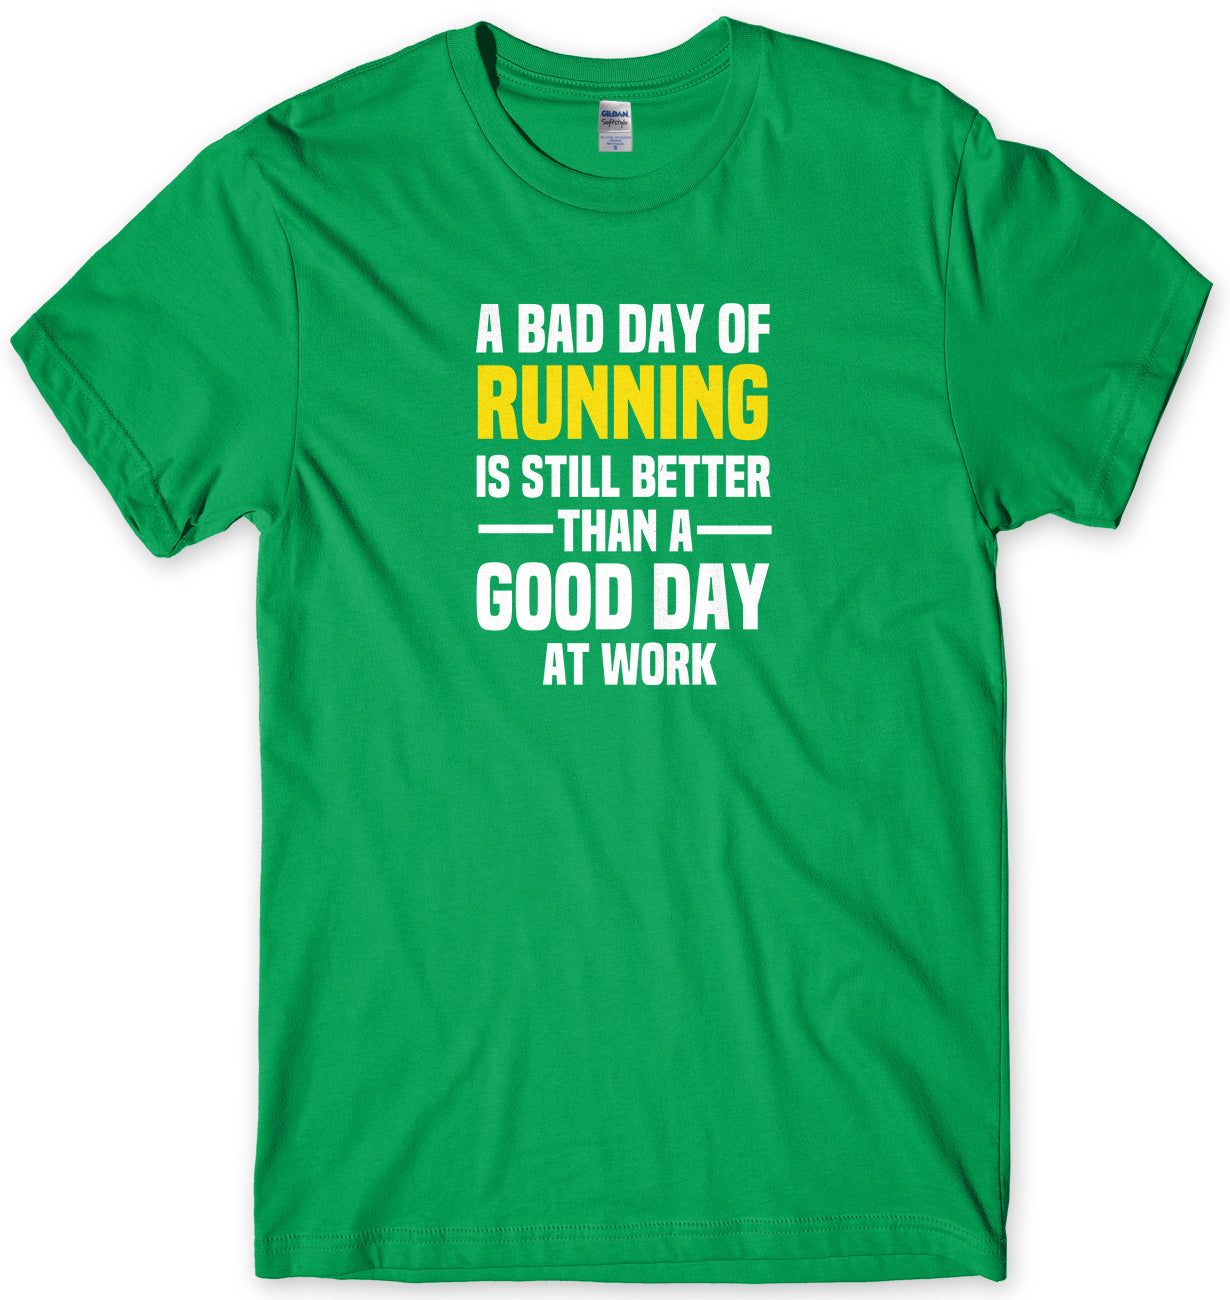 A BAD DAY OF RUNNING IS STILL BETTER THAN A GOOD DAY AT WORK MENS FUNNY SLOGAN UNISEX T-SHIRT - StreetSide Surgeons